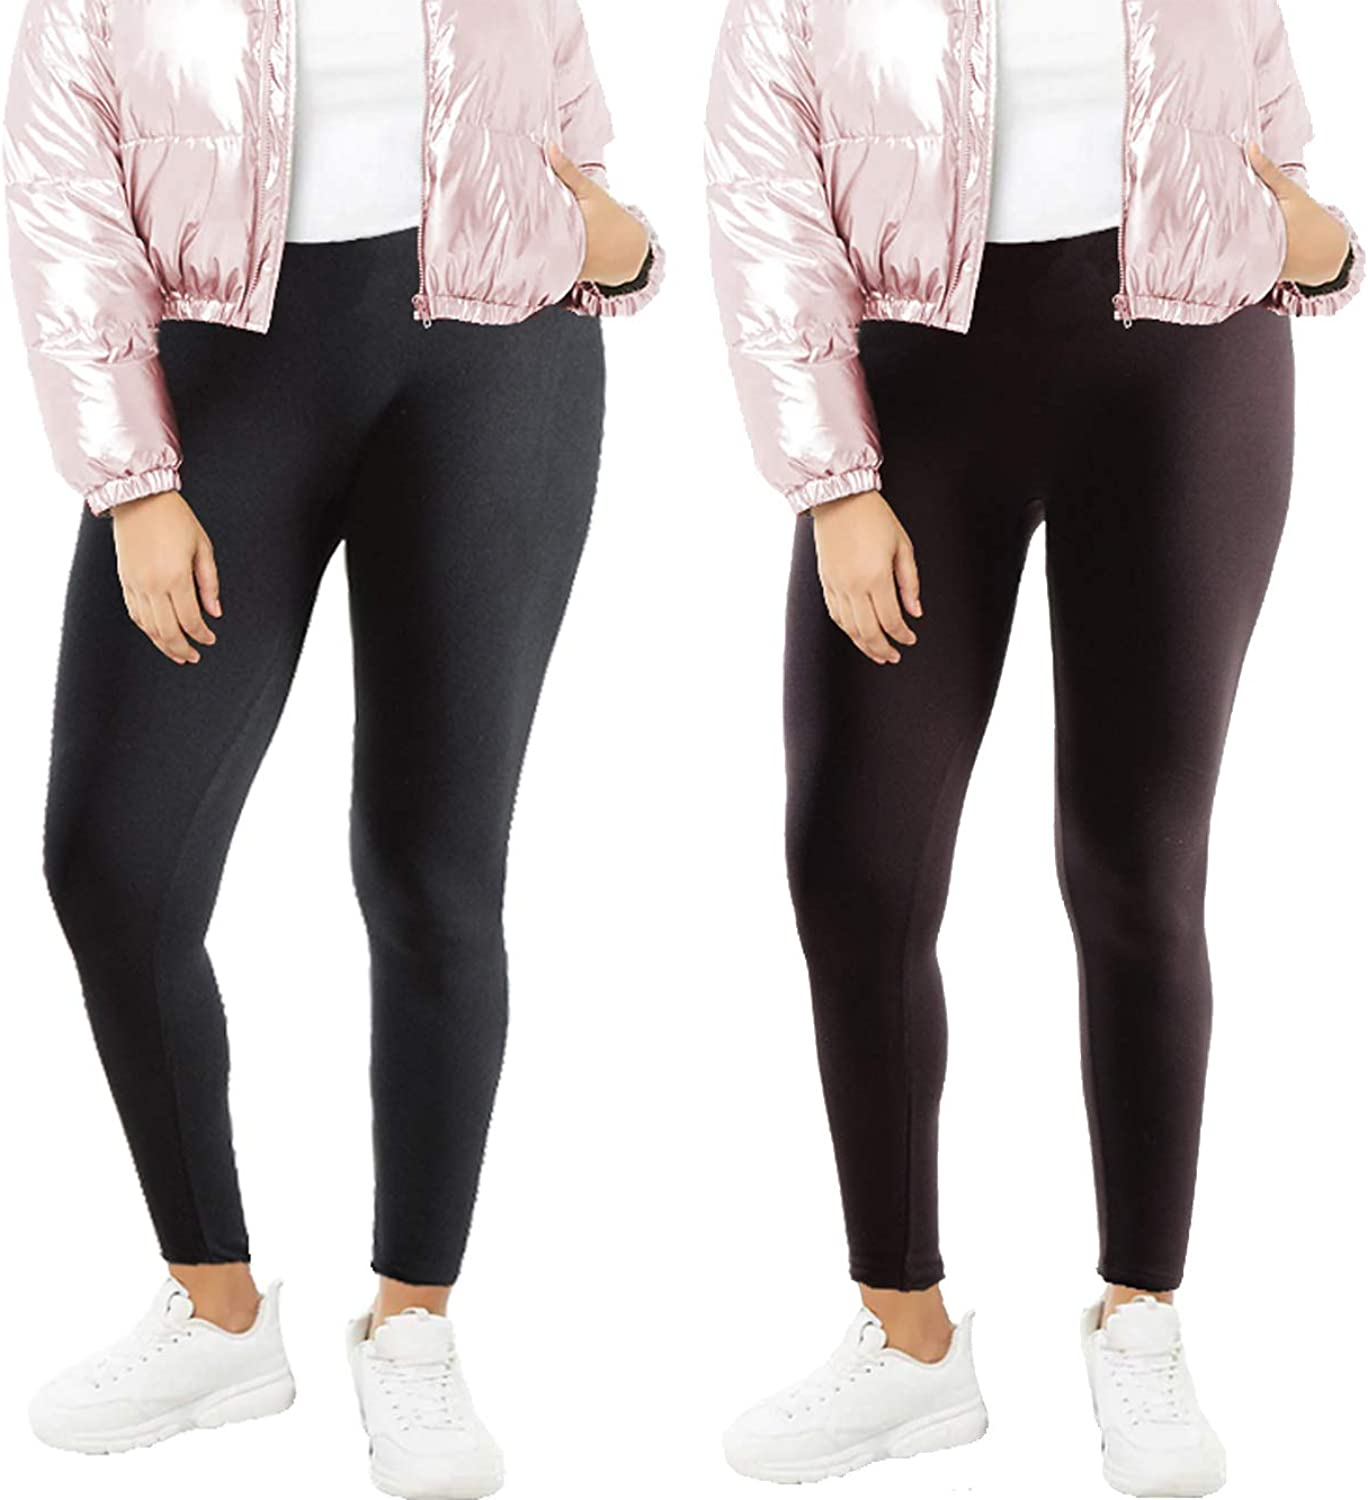 Women's Plus Size Fleece Lined Leggings (Sold as Single 2 and 5 Pack)